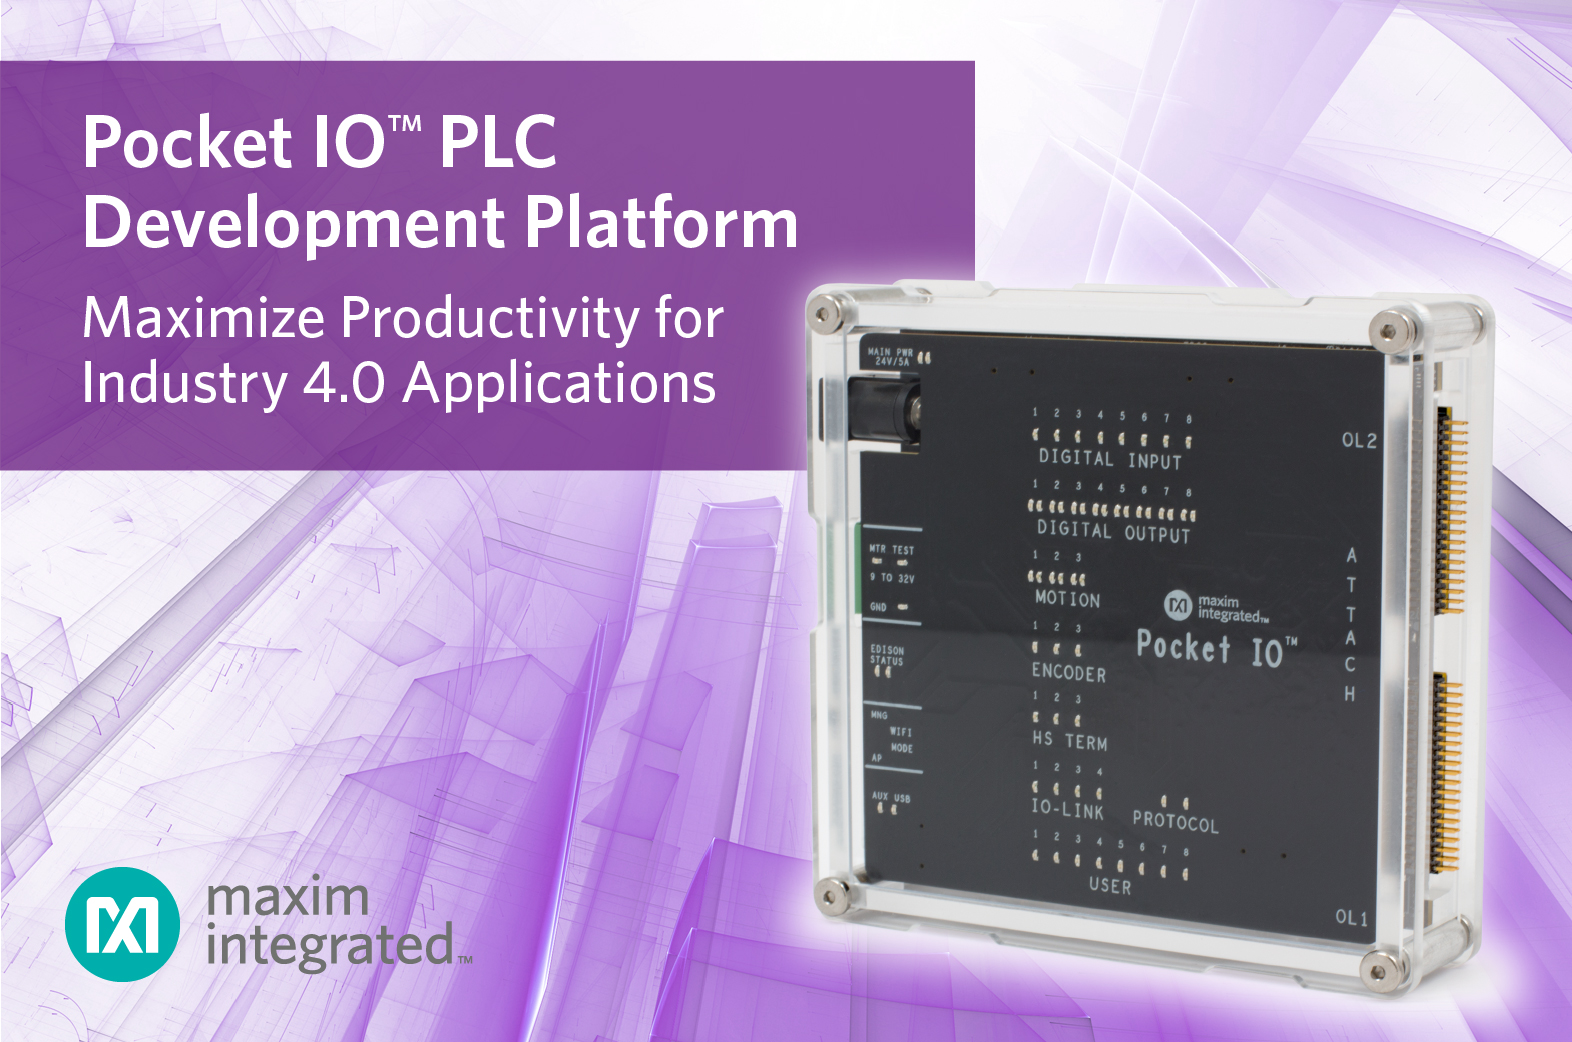 PLC provides intelligence for industry IoT